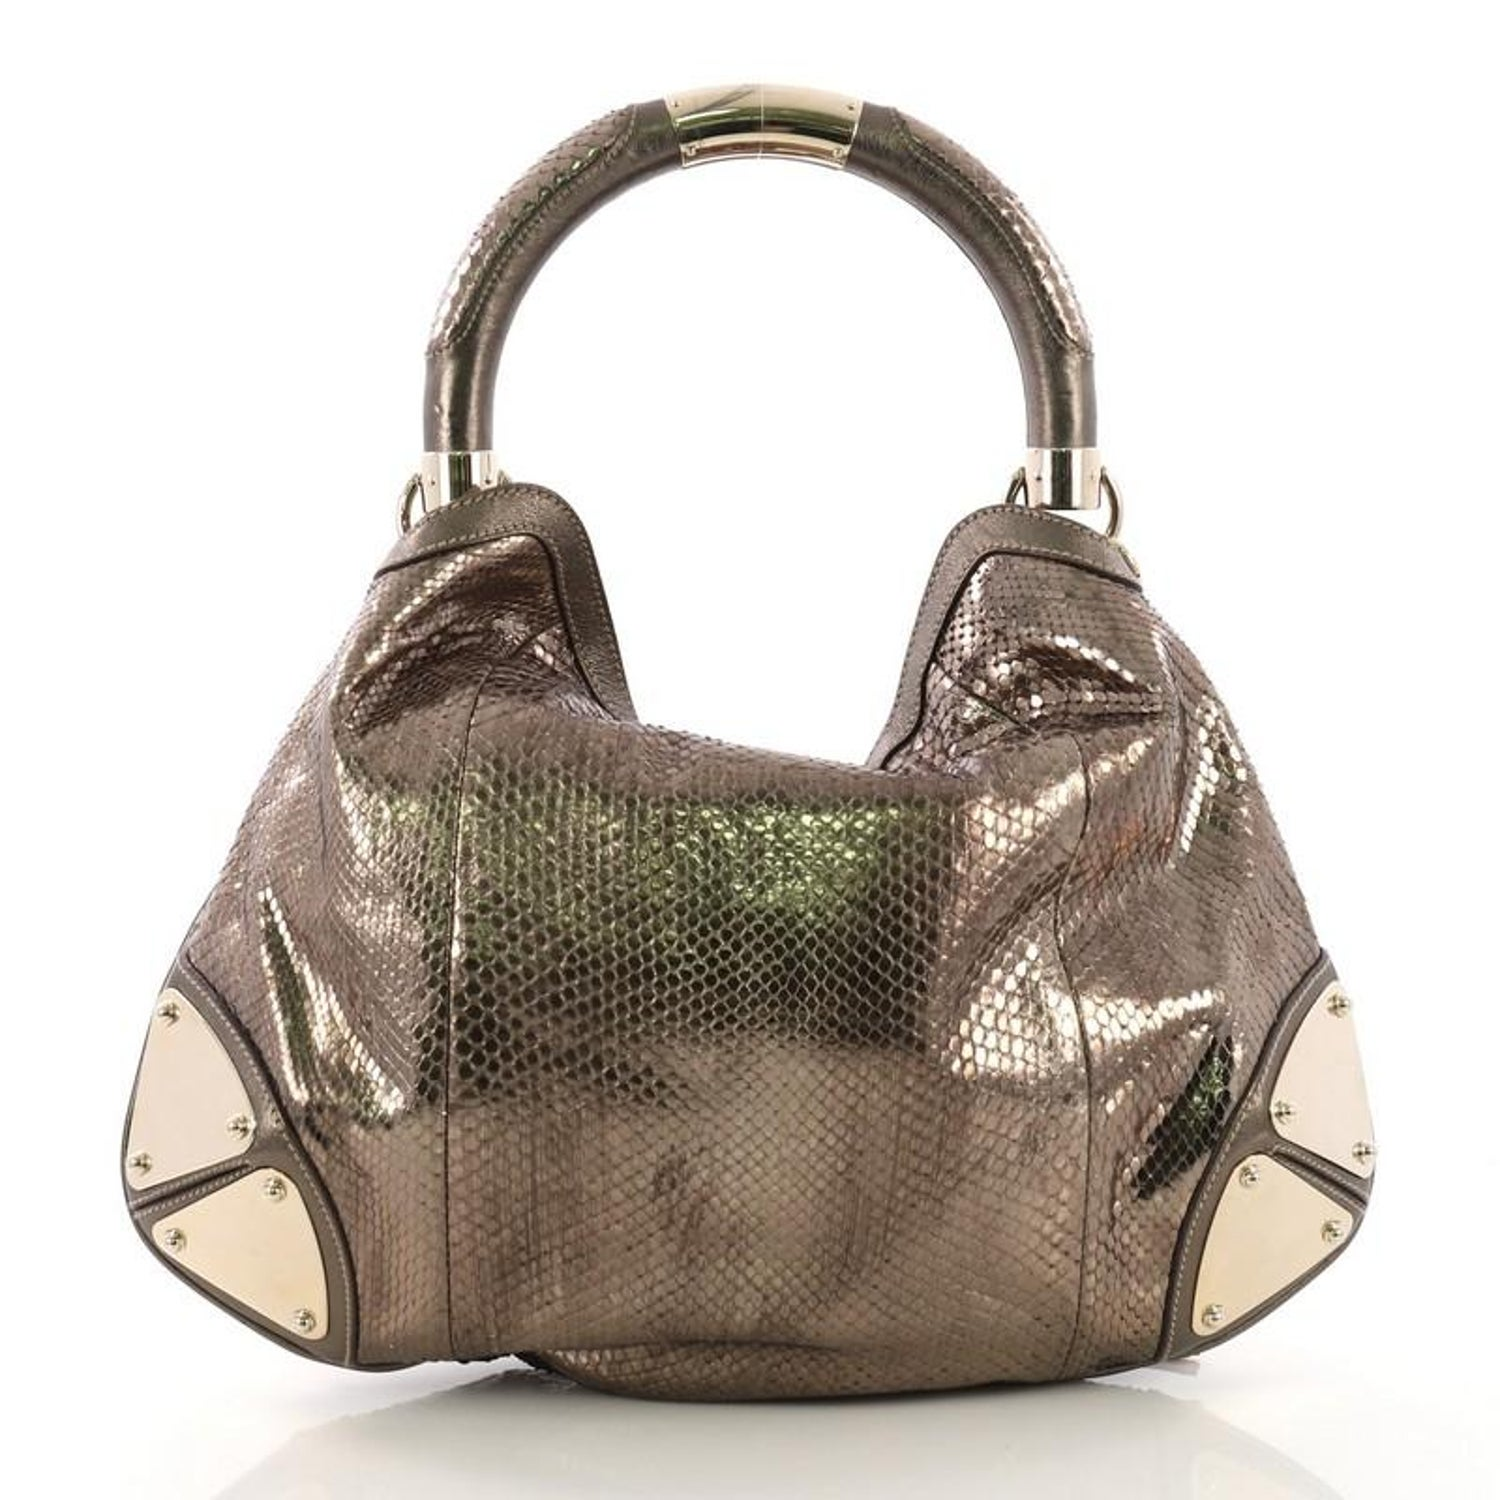 7c434ff5567 Gucci Indy Hobo Python Medium at 1stdibs